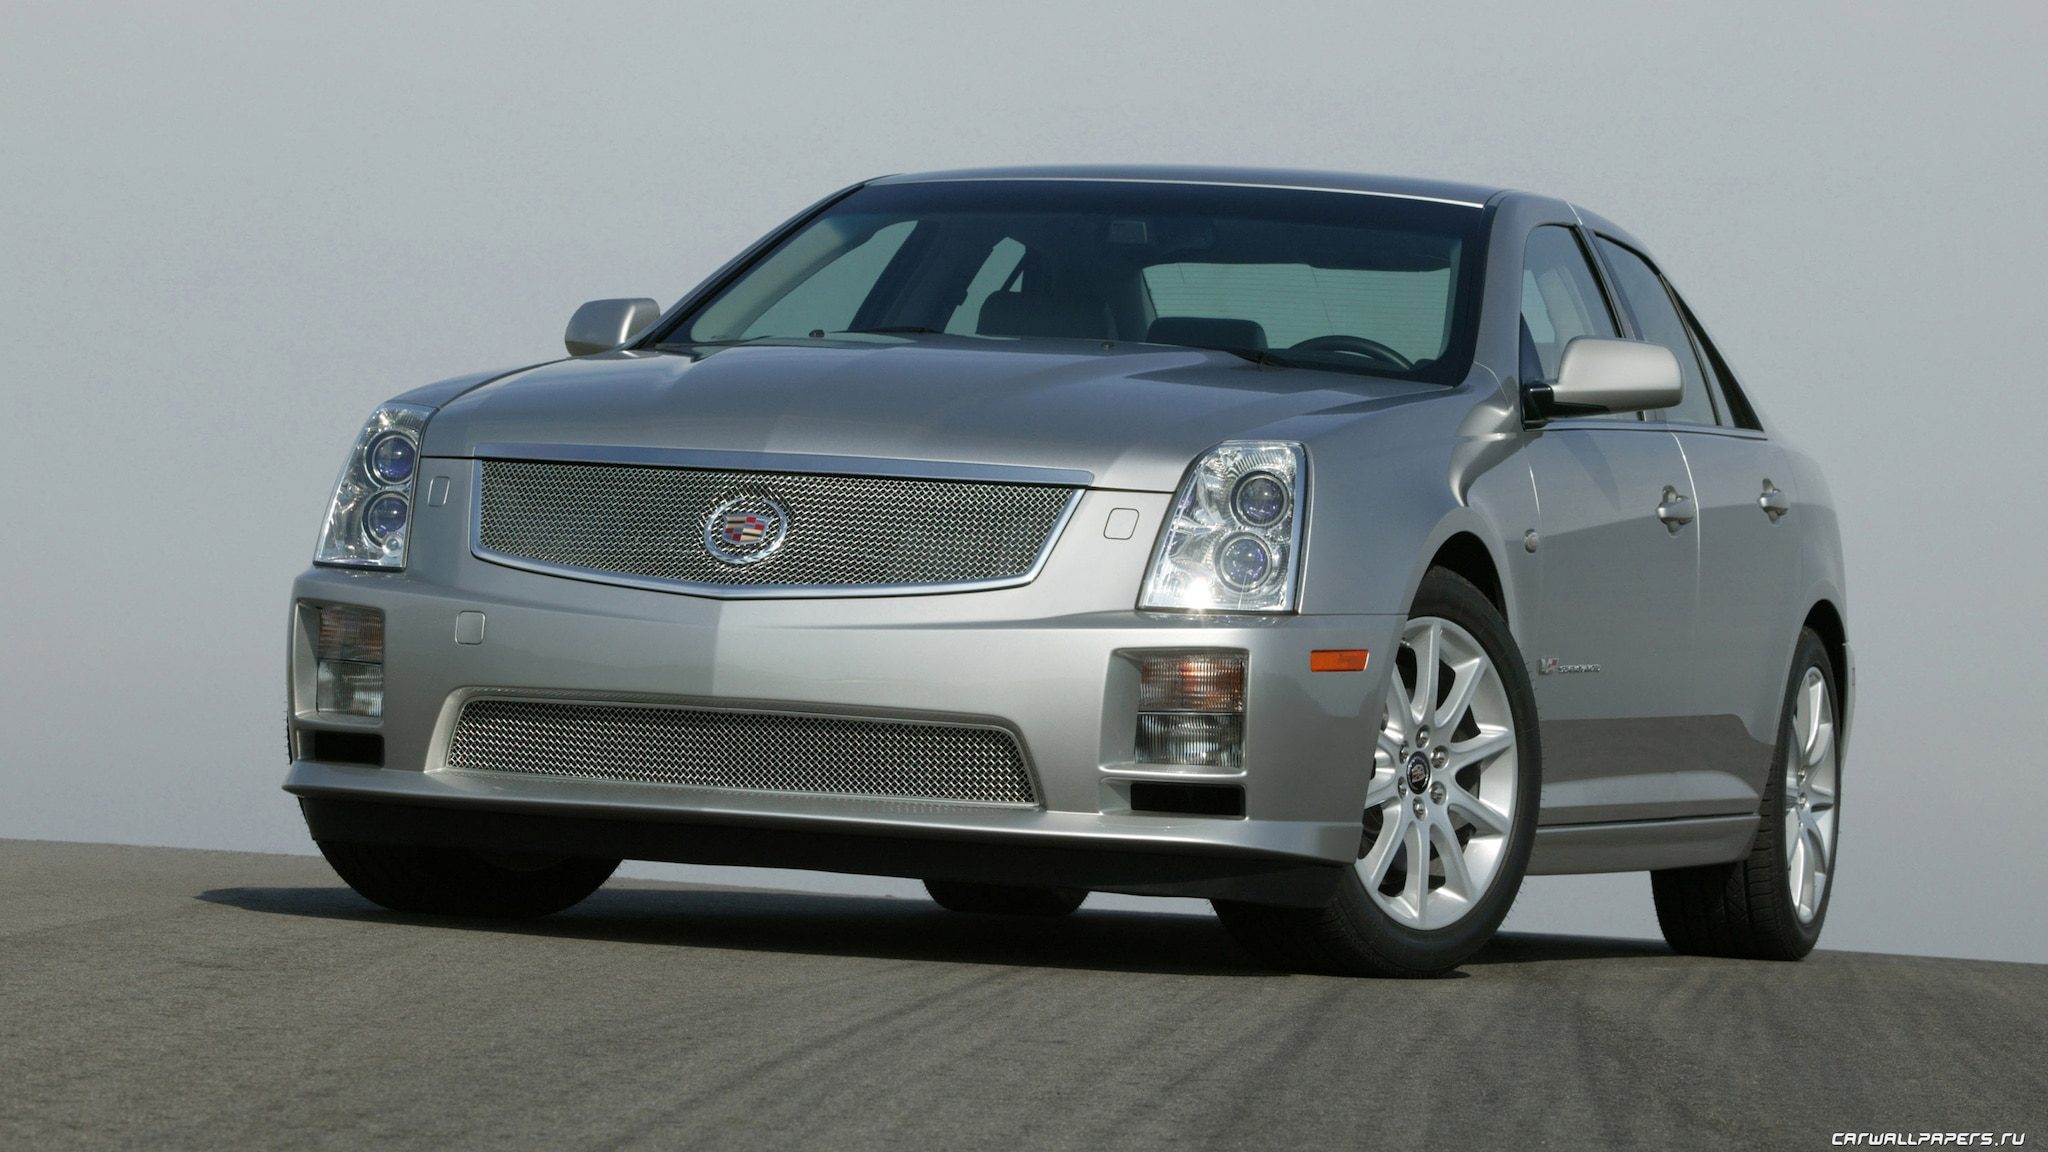 2006 Cadillac STS-V First Drive Review - Automobile Magazine